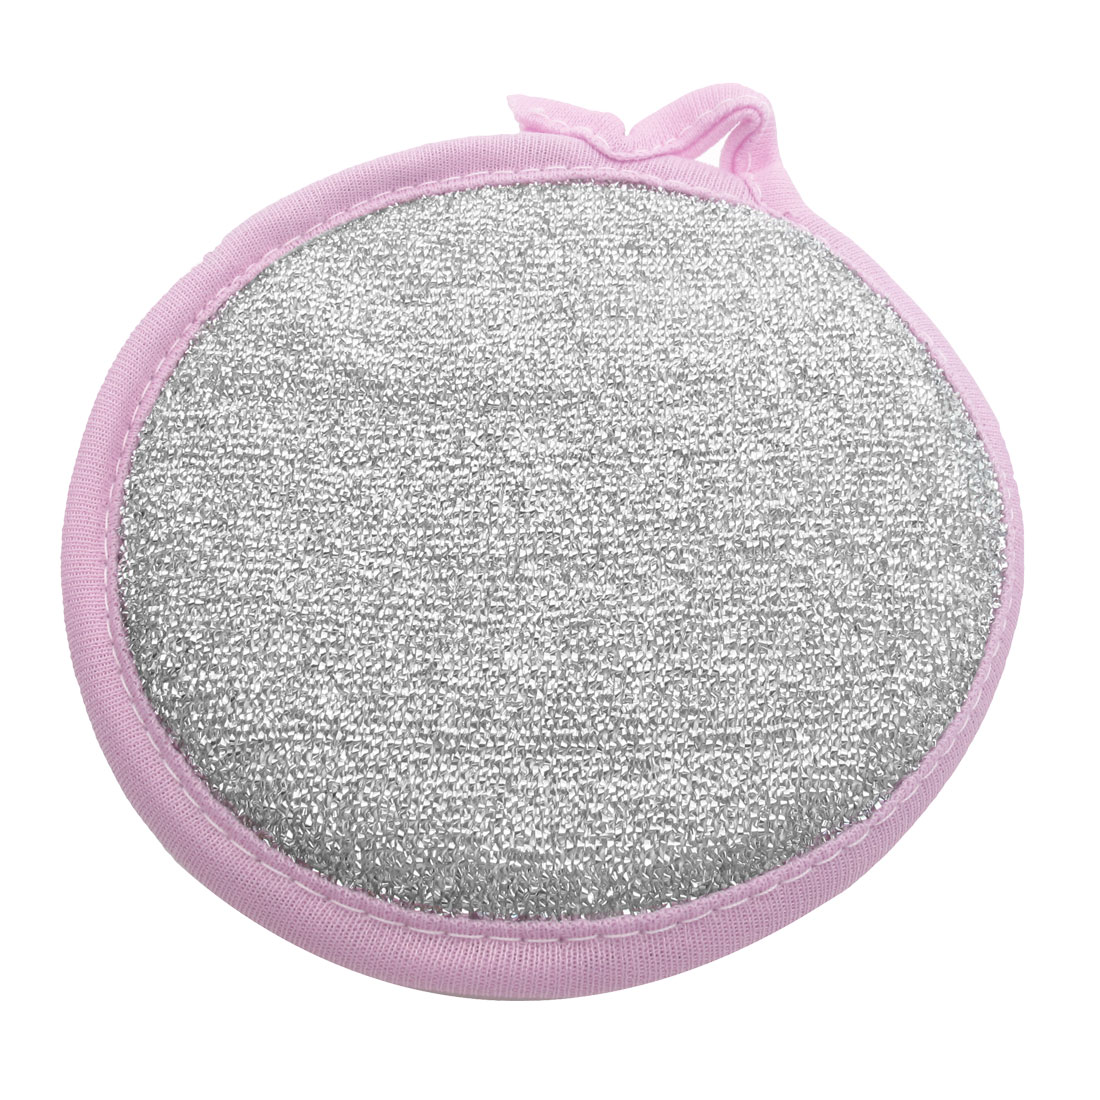 Round Shape Dish Scrubber Sponge Cleaning Pad for Kitchen